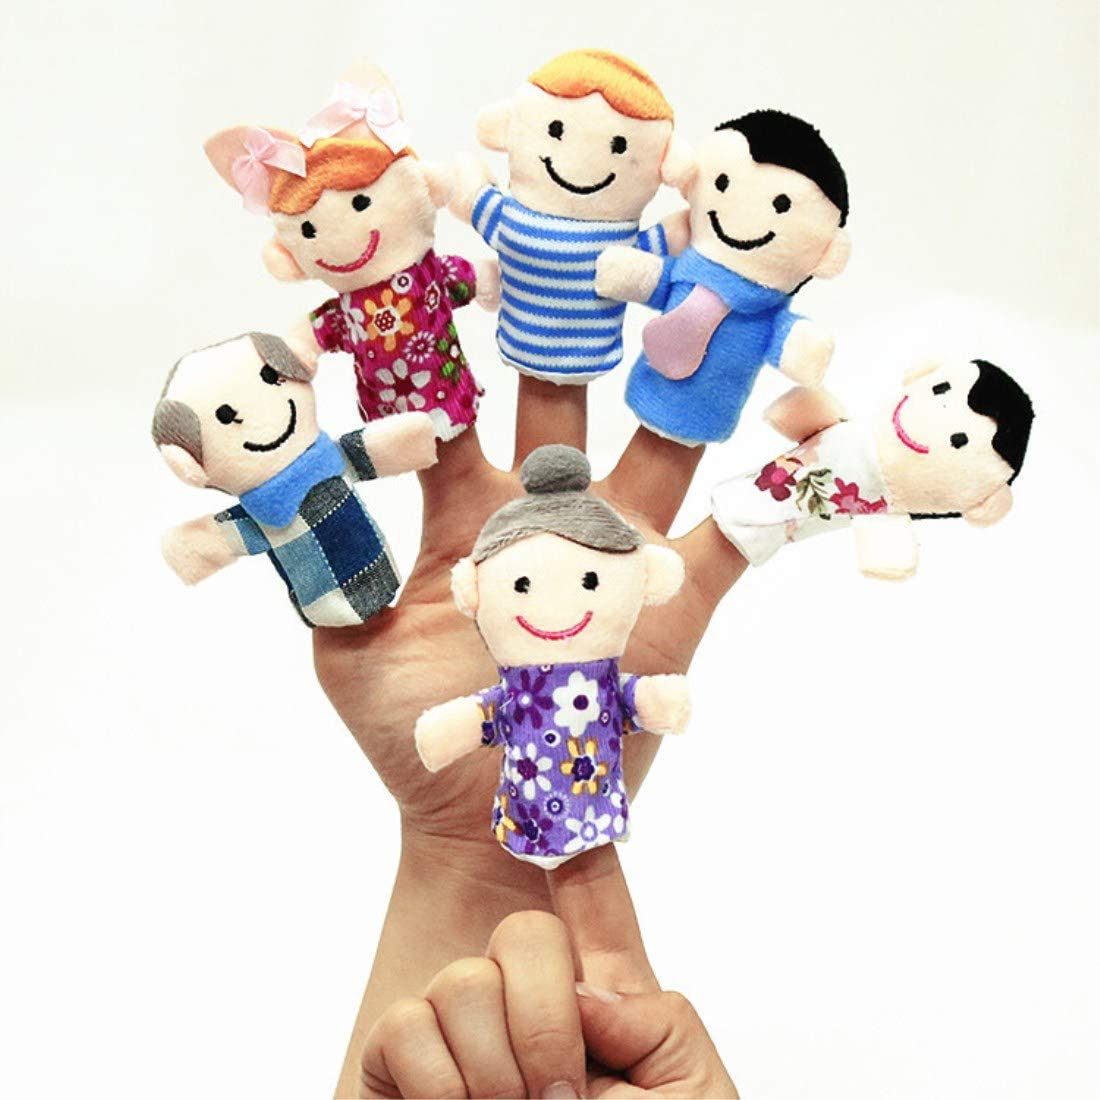 Shows Playtime Amytrade Mini Grandparents 6/&16 Piece Schools Brother /& Sister Family Style Finger Puppets for Children Mom /& Dad